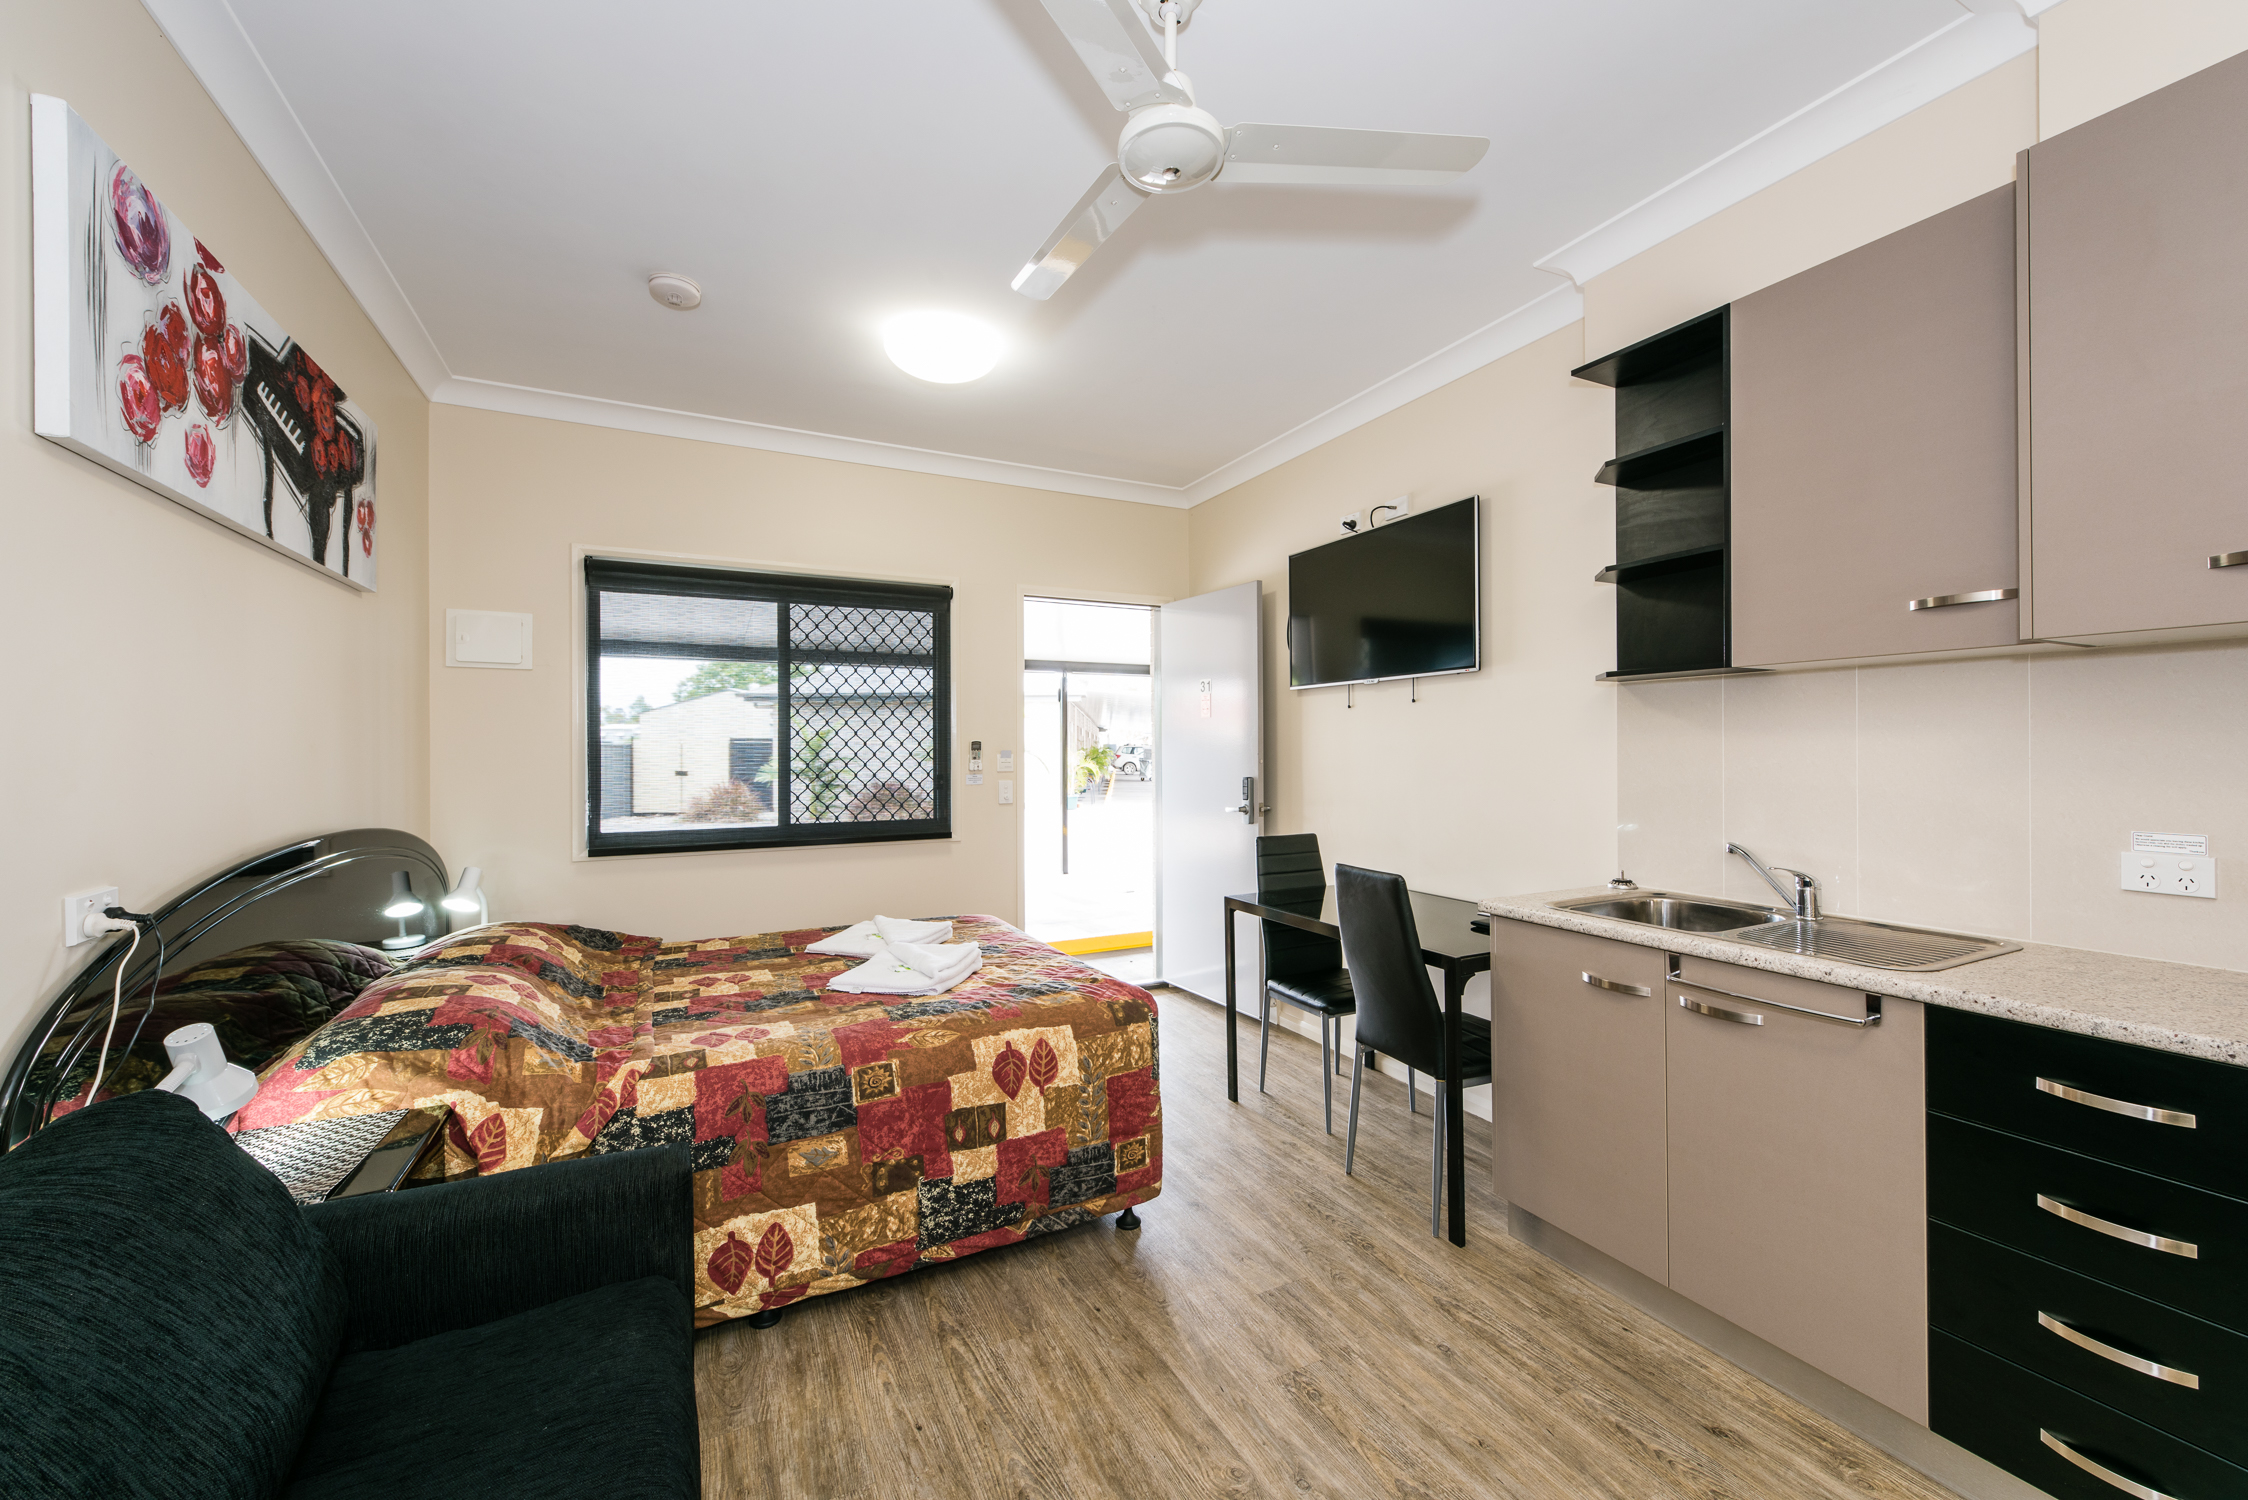 Stunning athena motel roma queensland with interior for Interior designer a roma